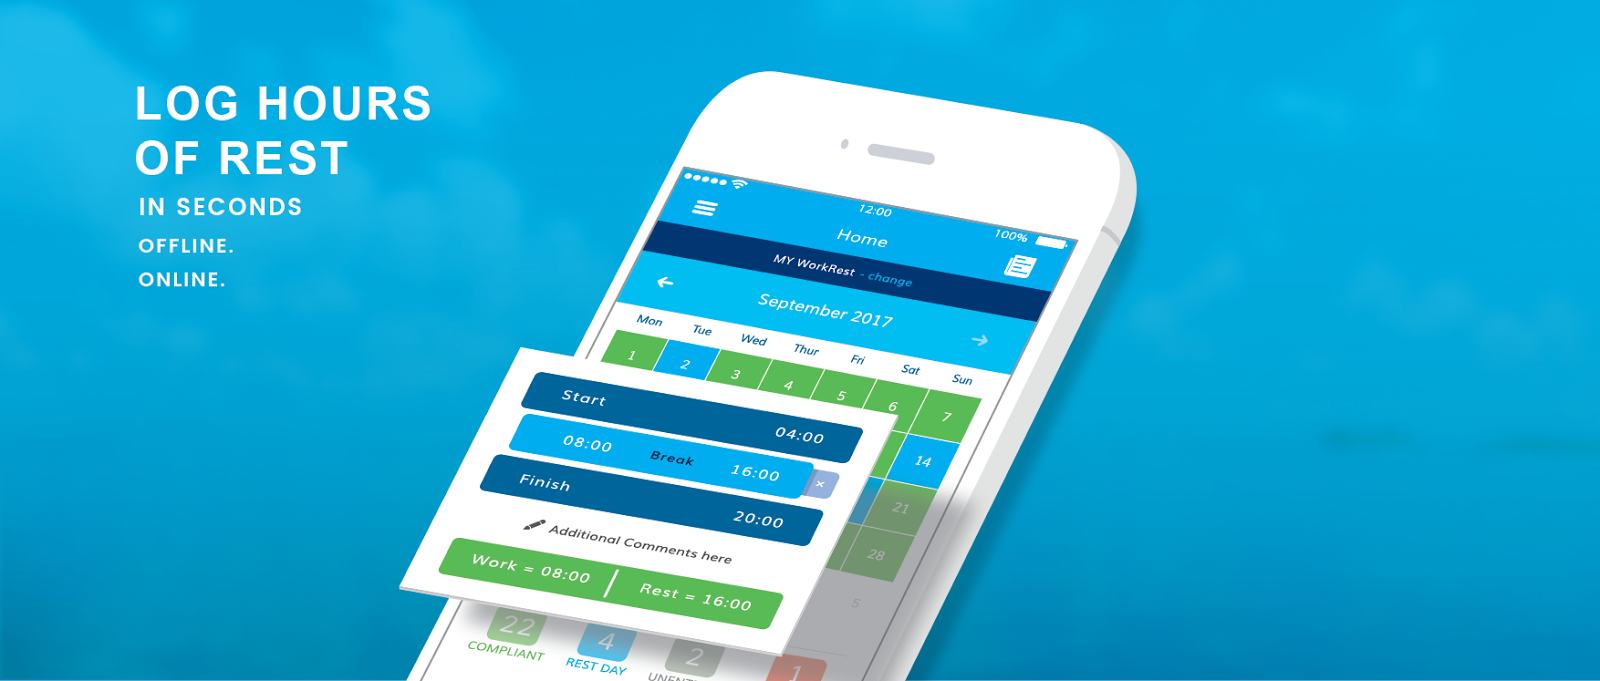 The app that's solving the hours of rest problem